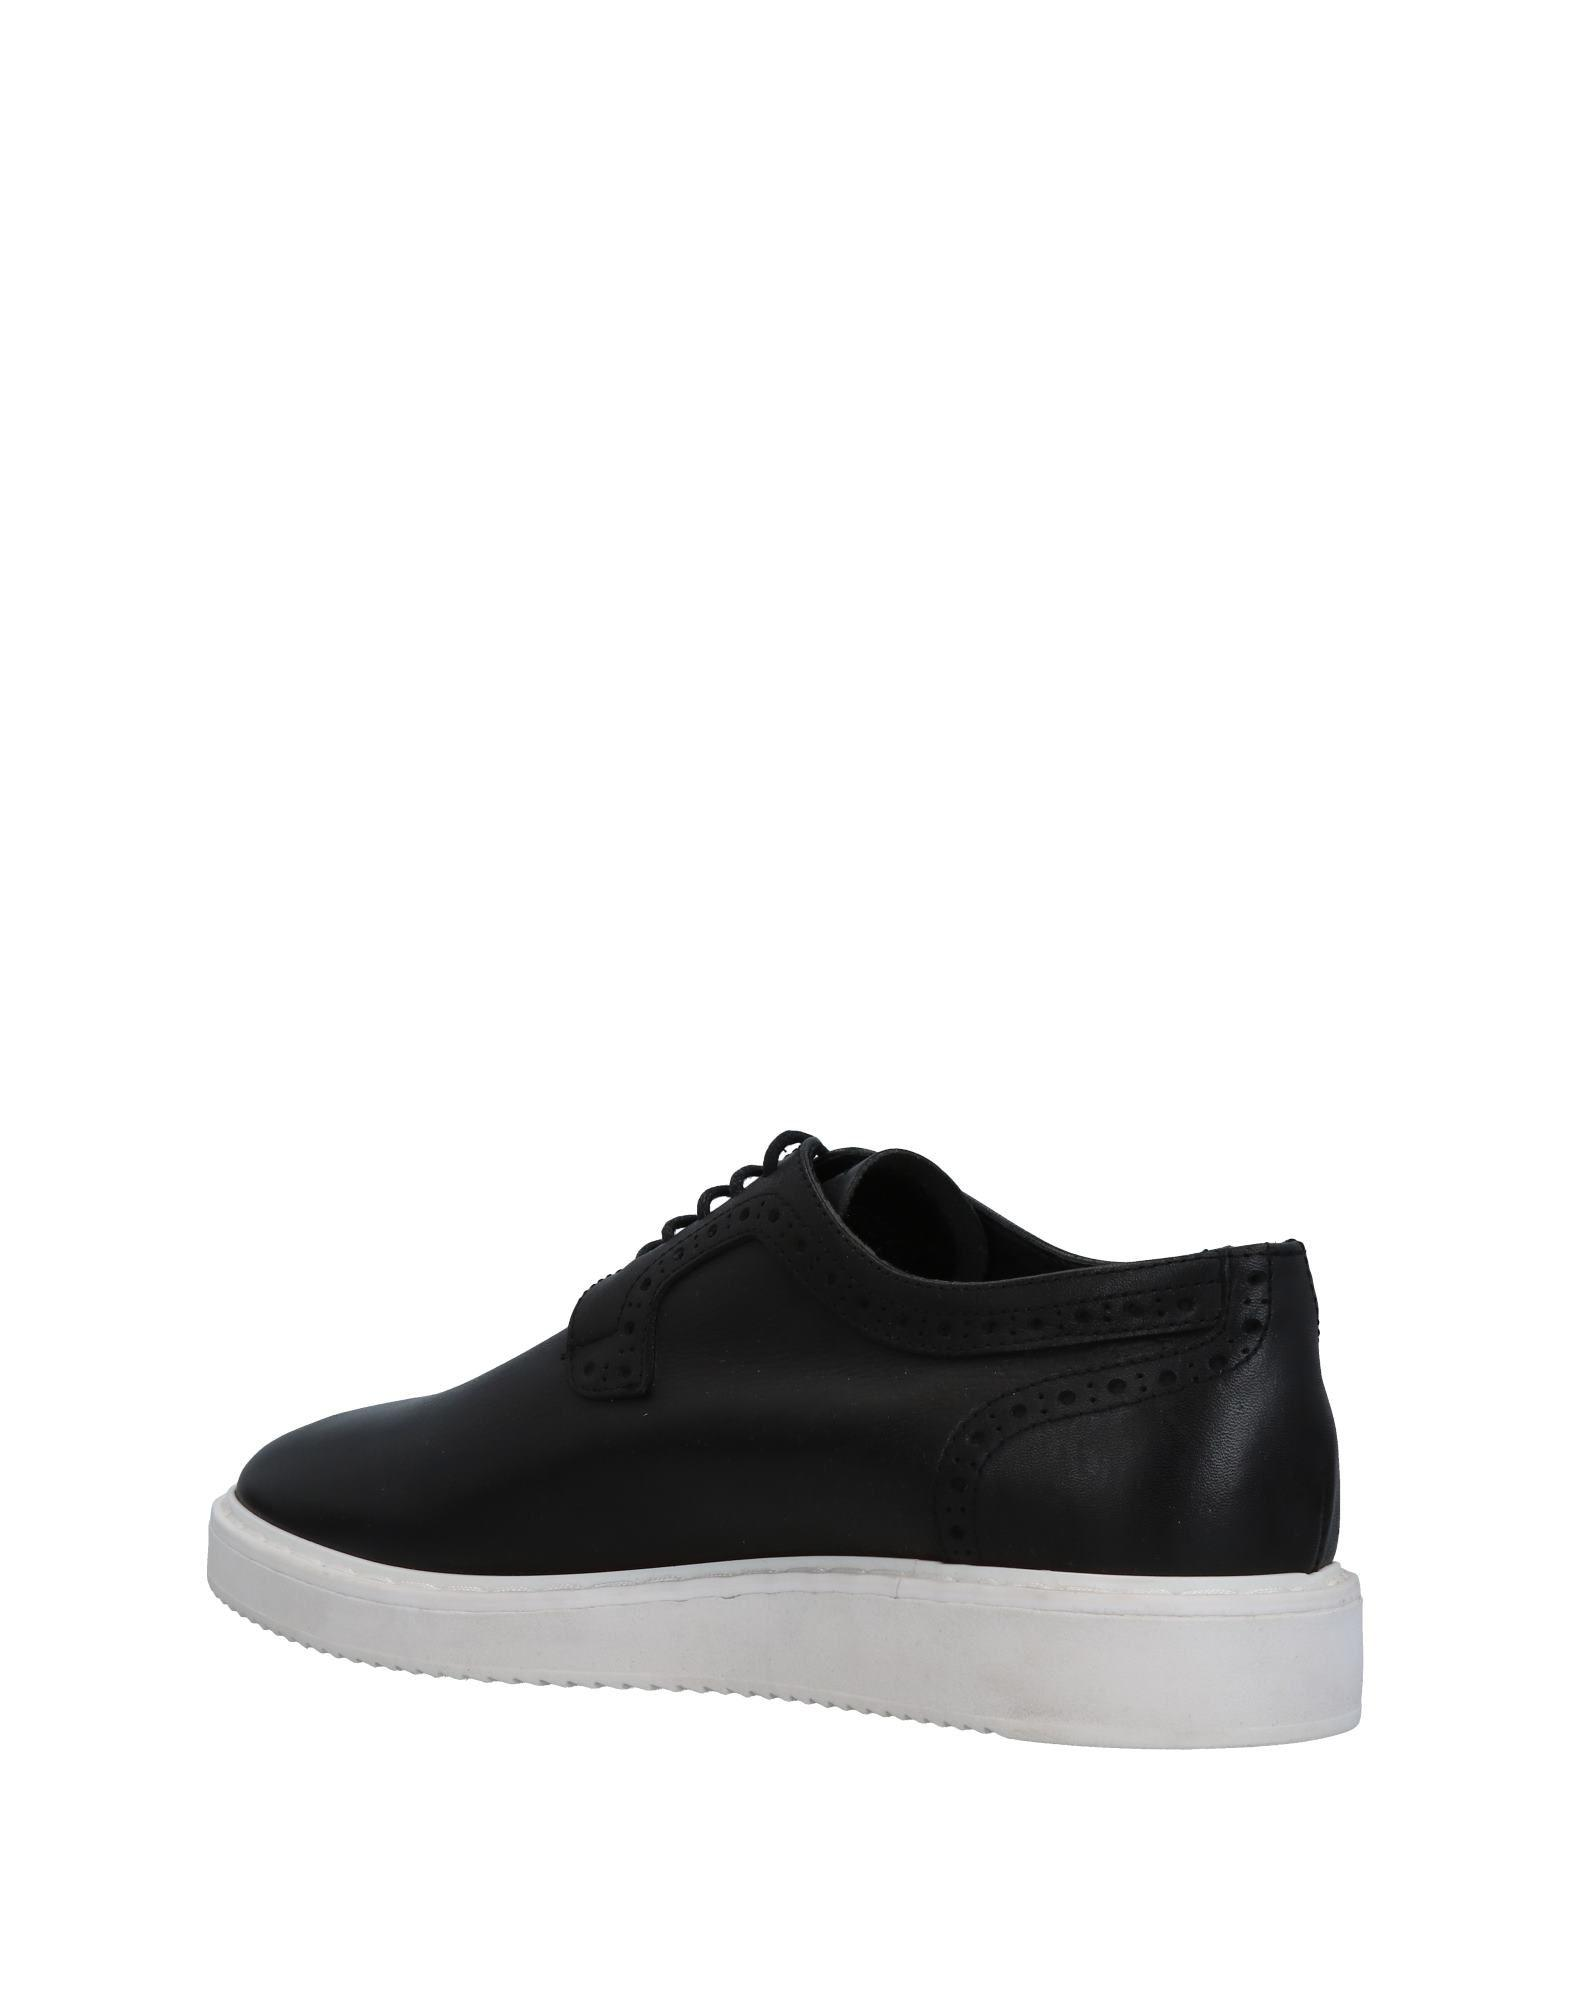 Antony Morato Leather Lace-up Shoe in Black for Men